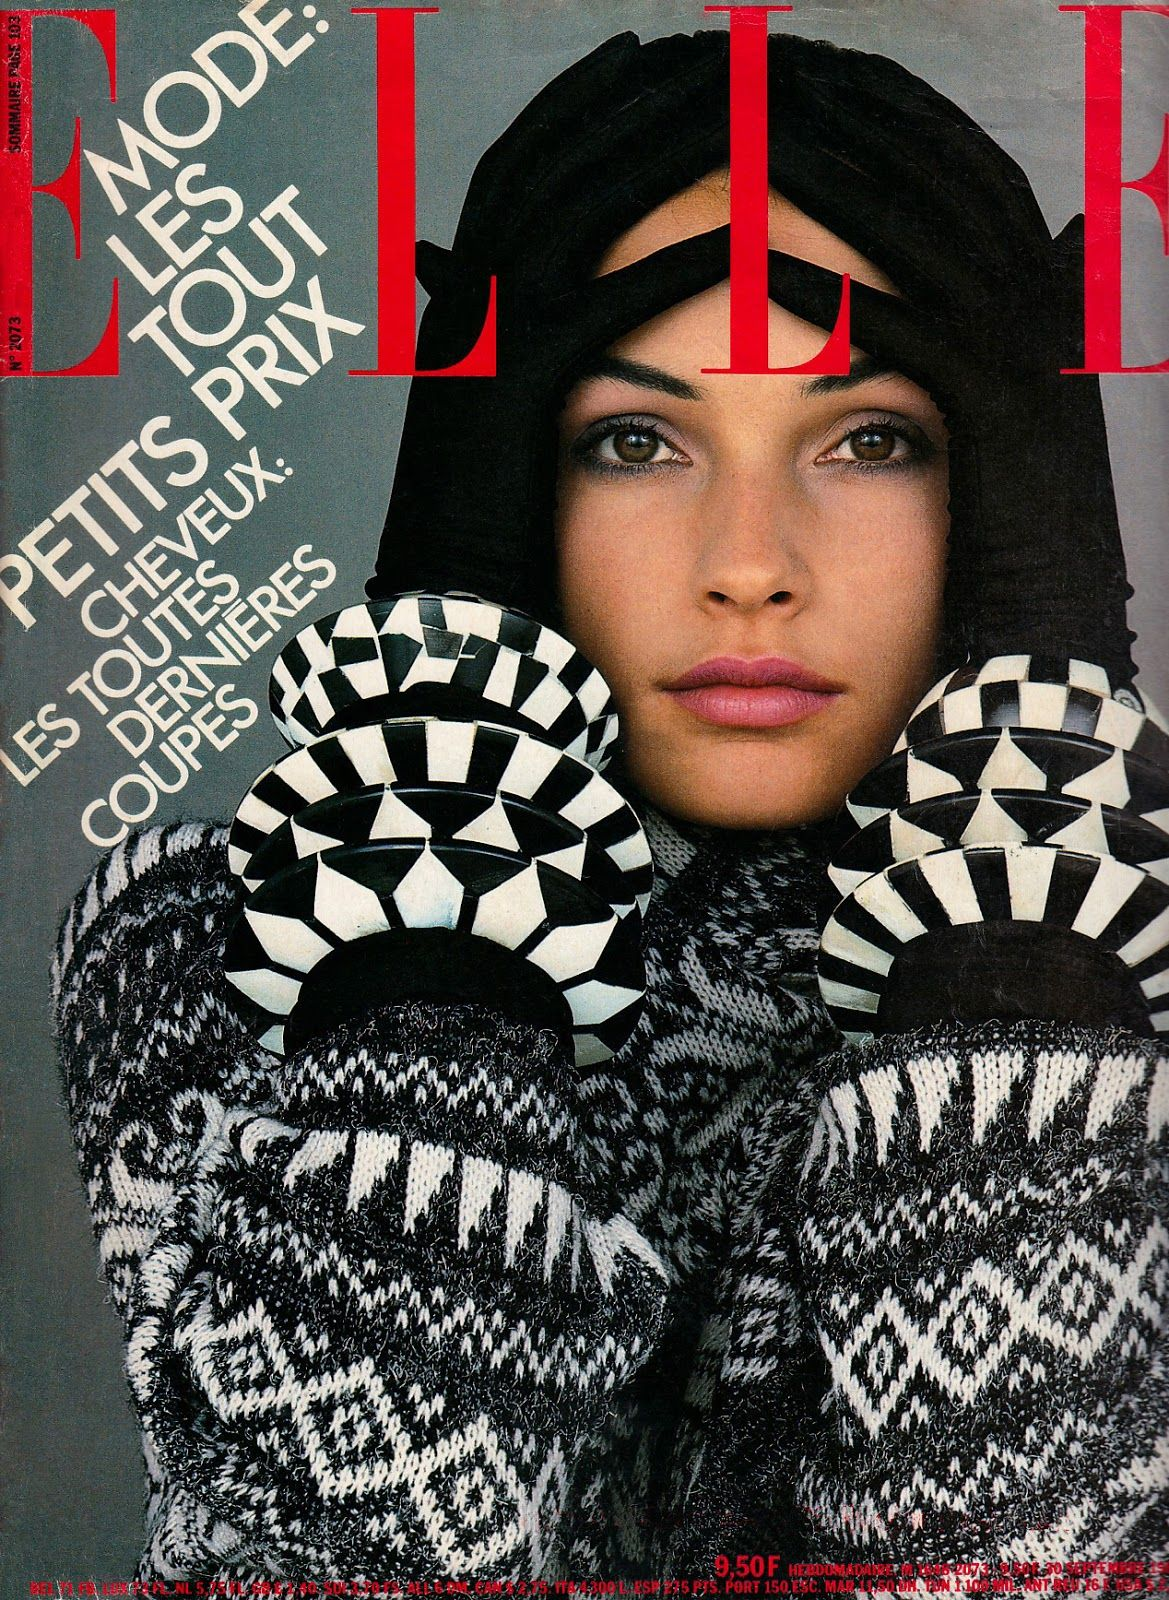 Famke Janssen photographed by Francis Giacobetti for the cover of Elle, September 1985